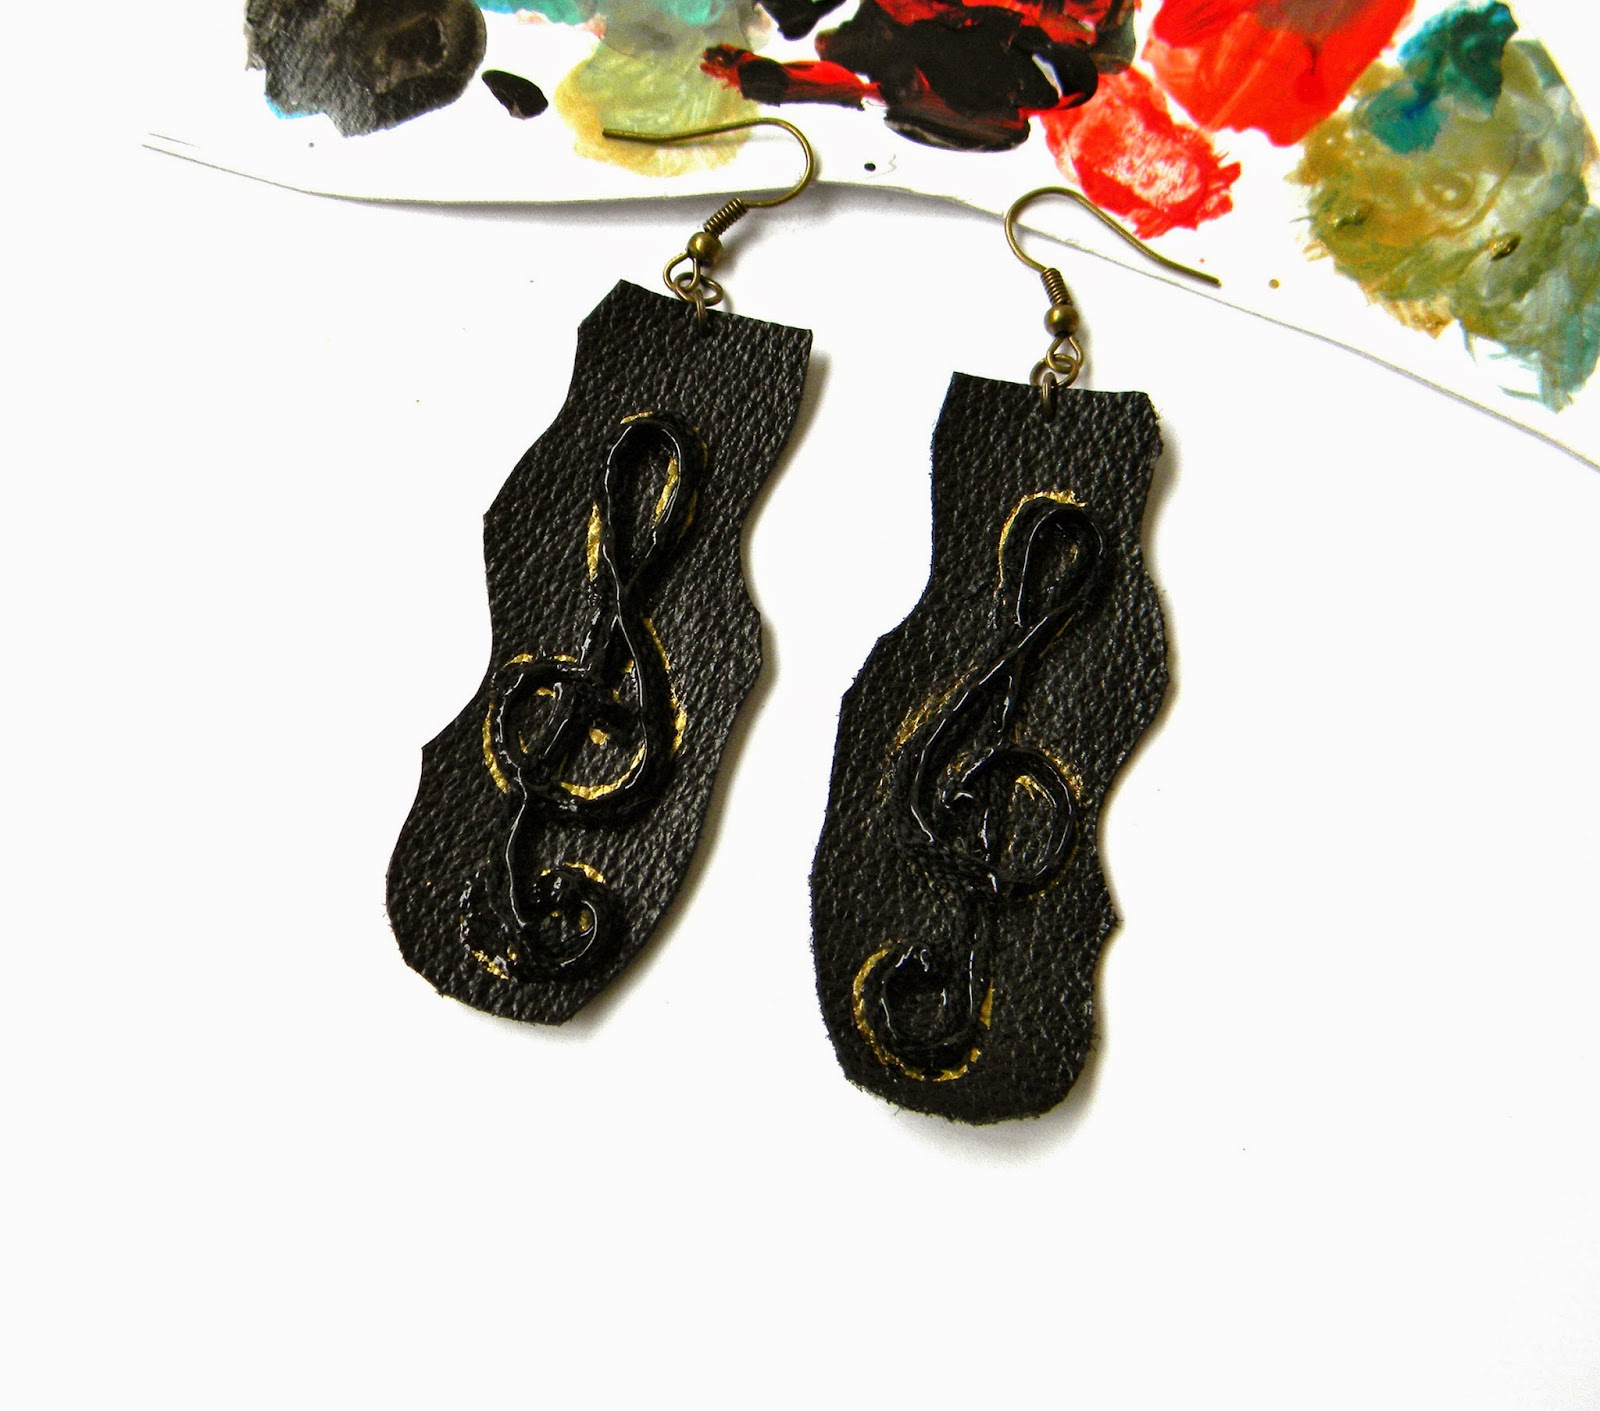 Leather Hand Painted Earrings with Sol Key and Cotton Strings